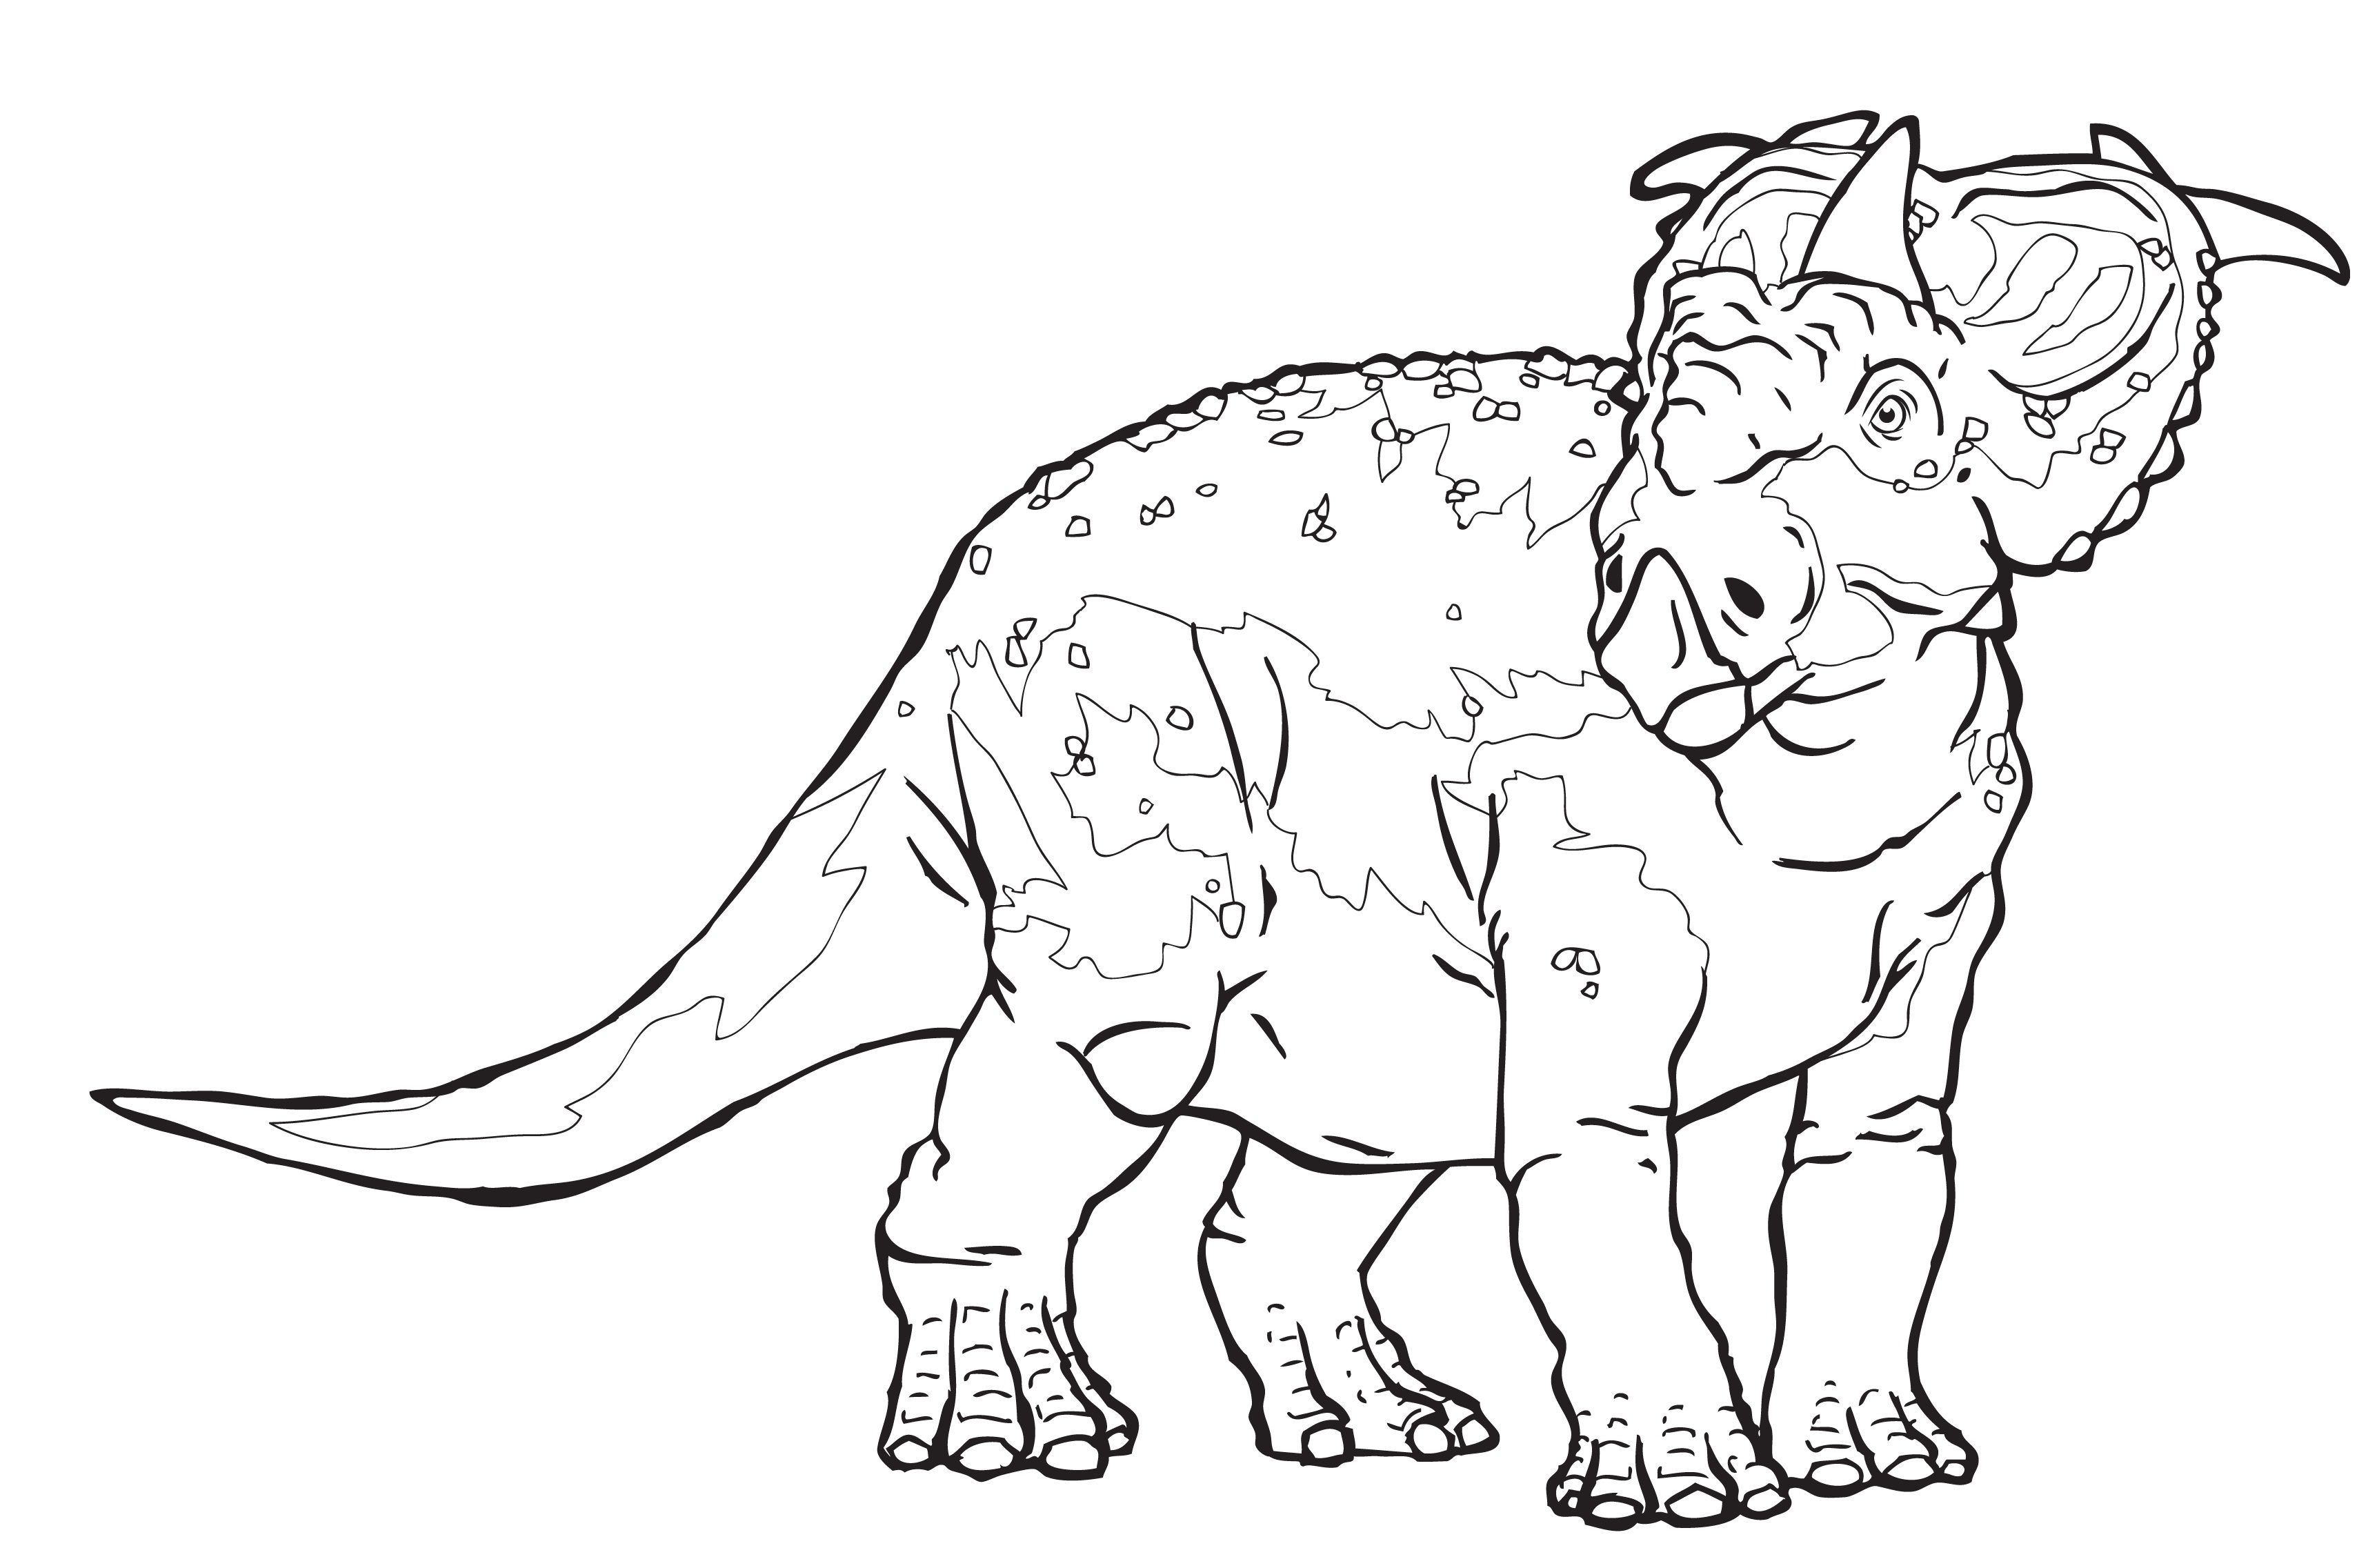 Pachyrhinosaurus Dinosaurs Coloring Pages For Kids B6y